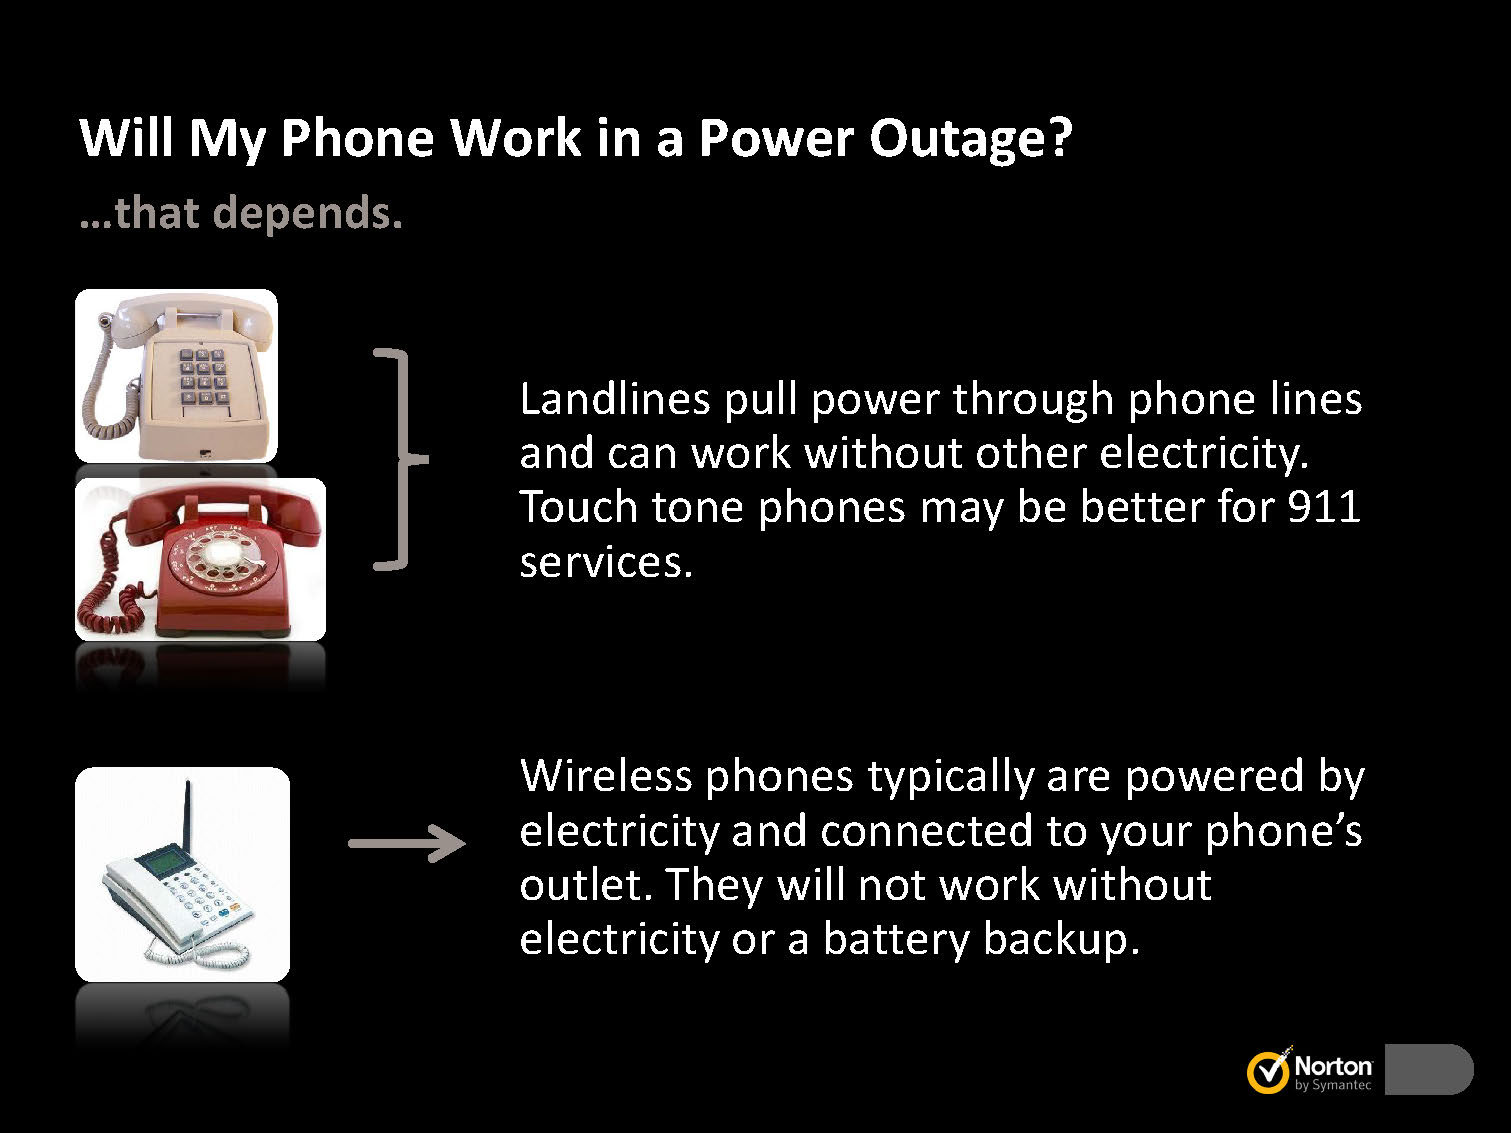 online writing jobs that pay well homes will my phone work during a power outage that depends norton